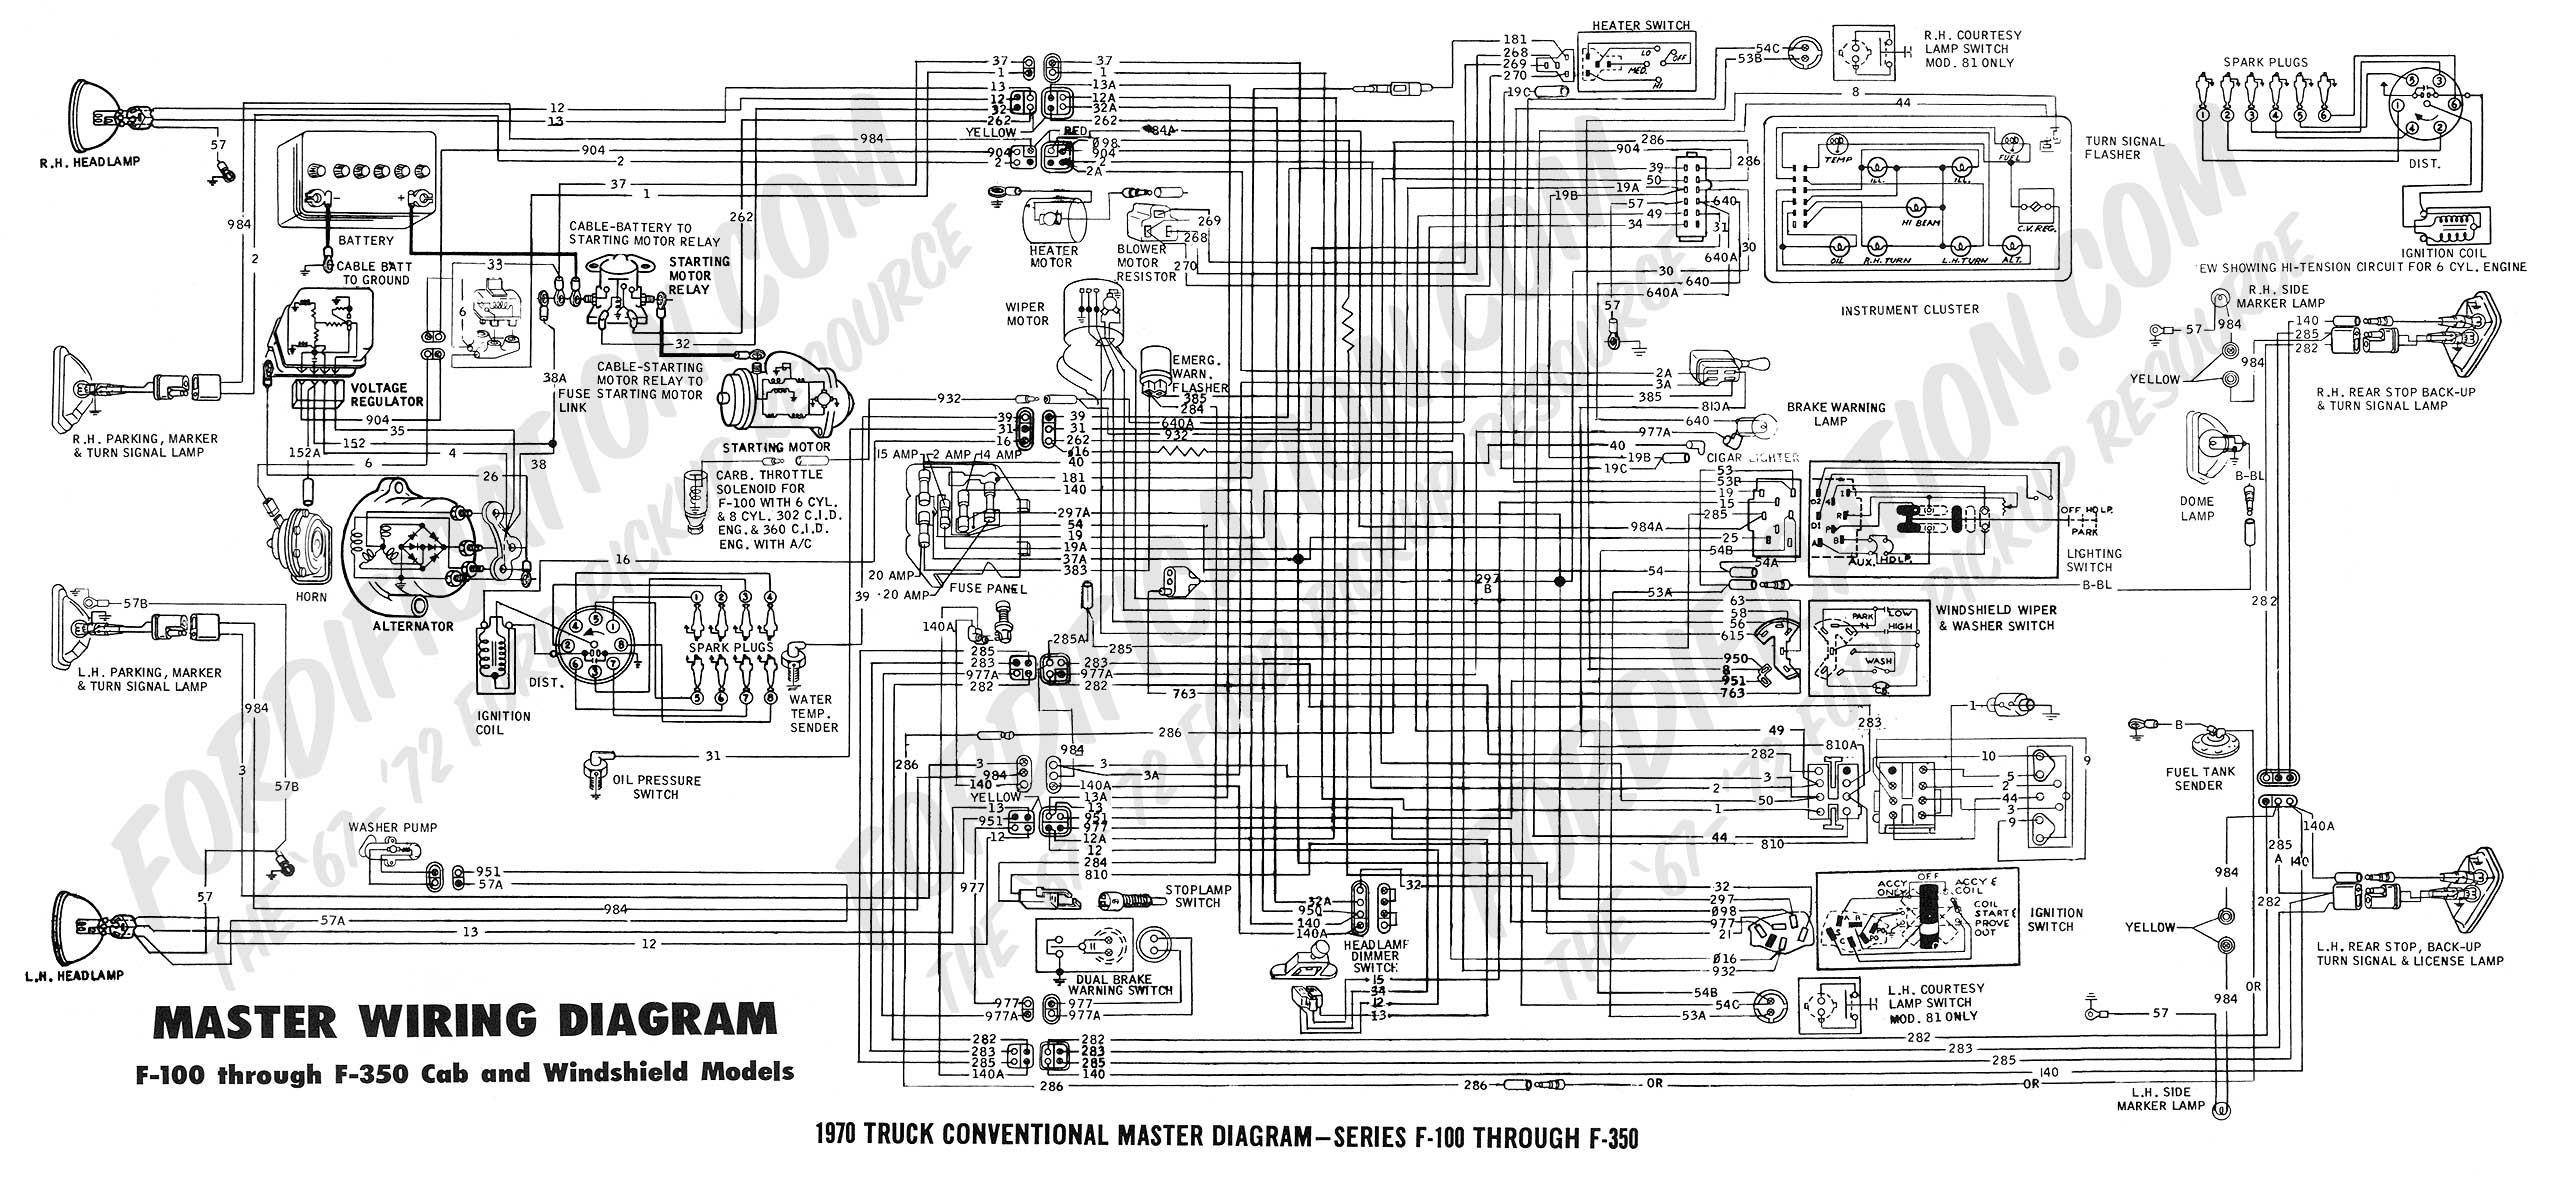 wiring diagram 70_master ford truck technical drawings and schematics section h wiring 1988 toyota pickup headlight wiring diagram at readyjetset.co